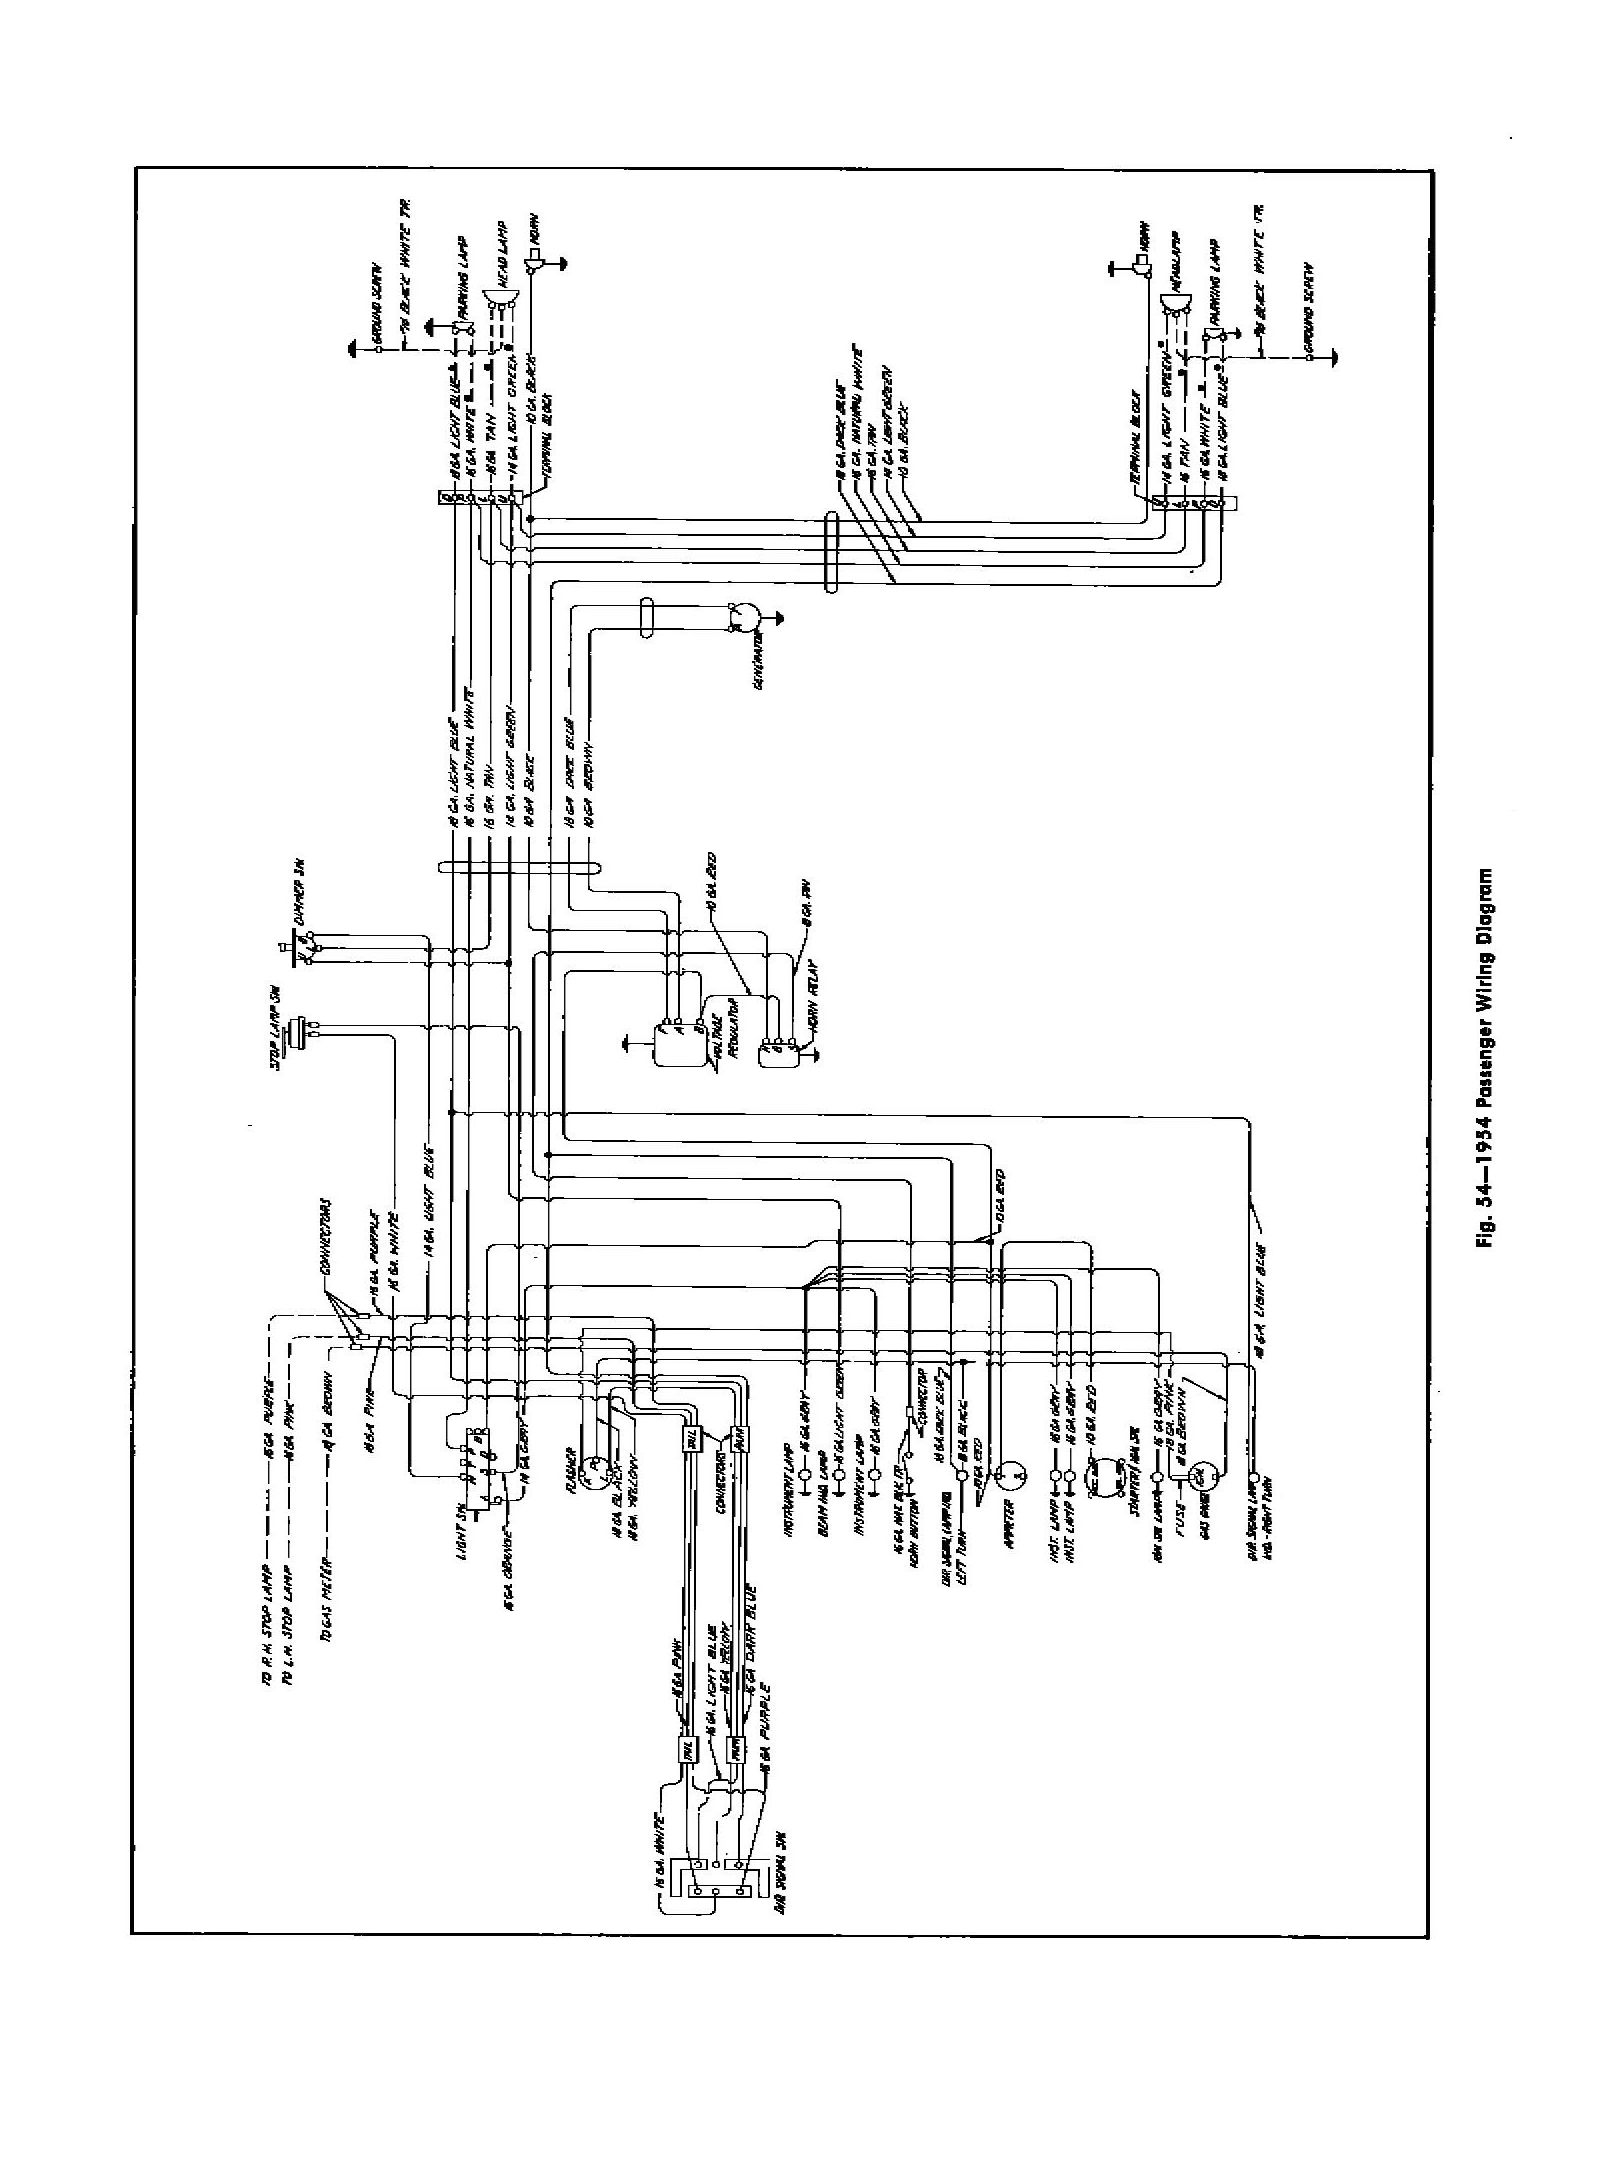 Vehicle Wiring Harness Diagram Golden Schematic Blue White Red Black Phone Free Download Diagrams 1954 Passenger Car